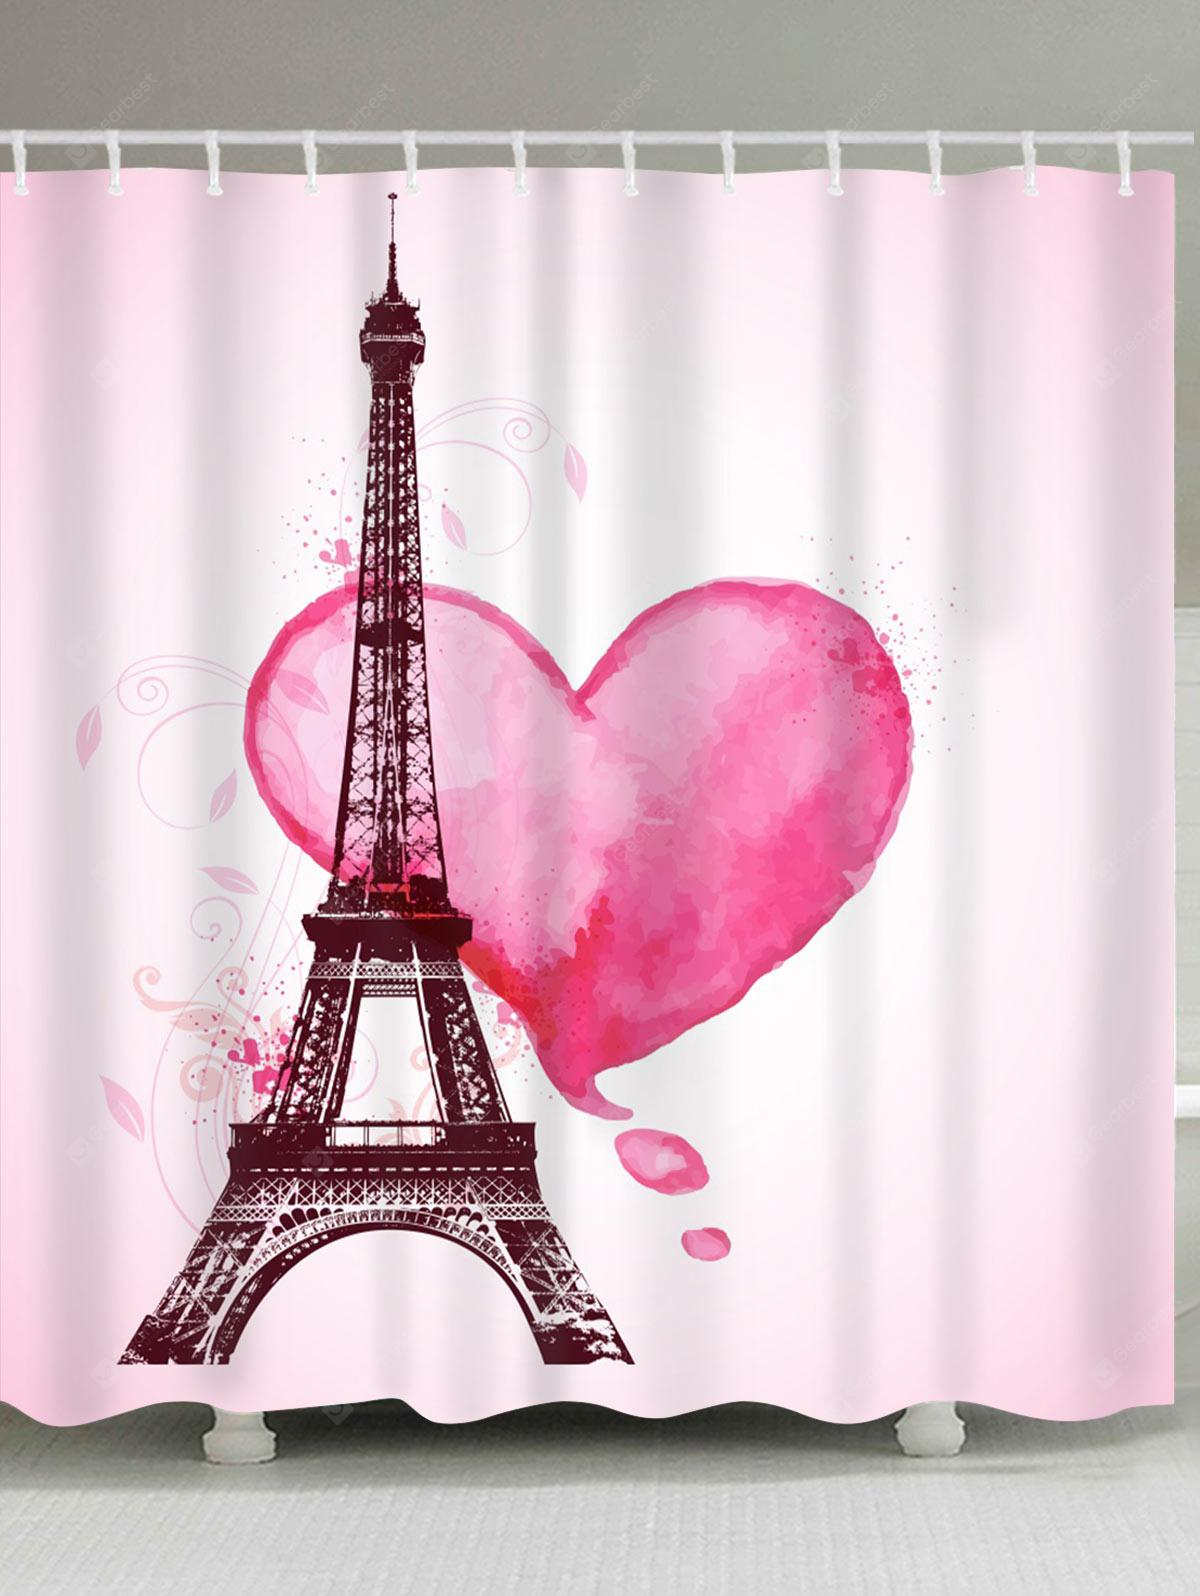 Valentine S Day Eiffel Tower Heart Print Waterproof Fabric Shower Curtain